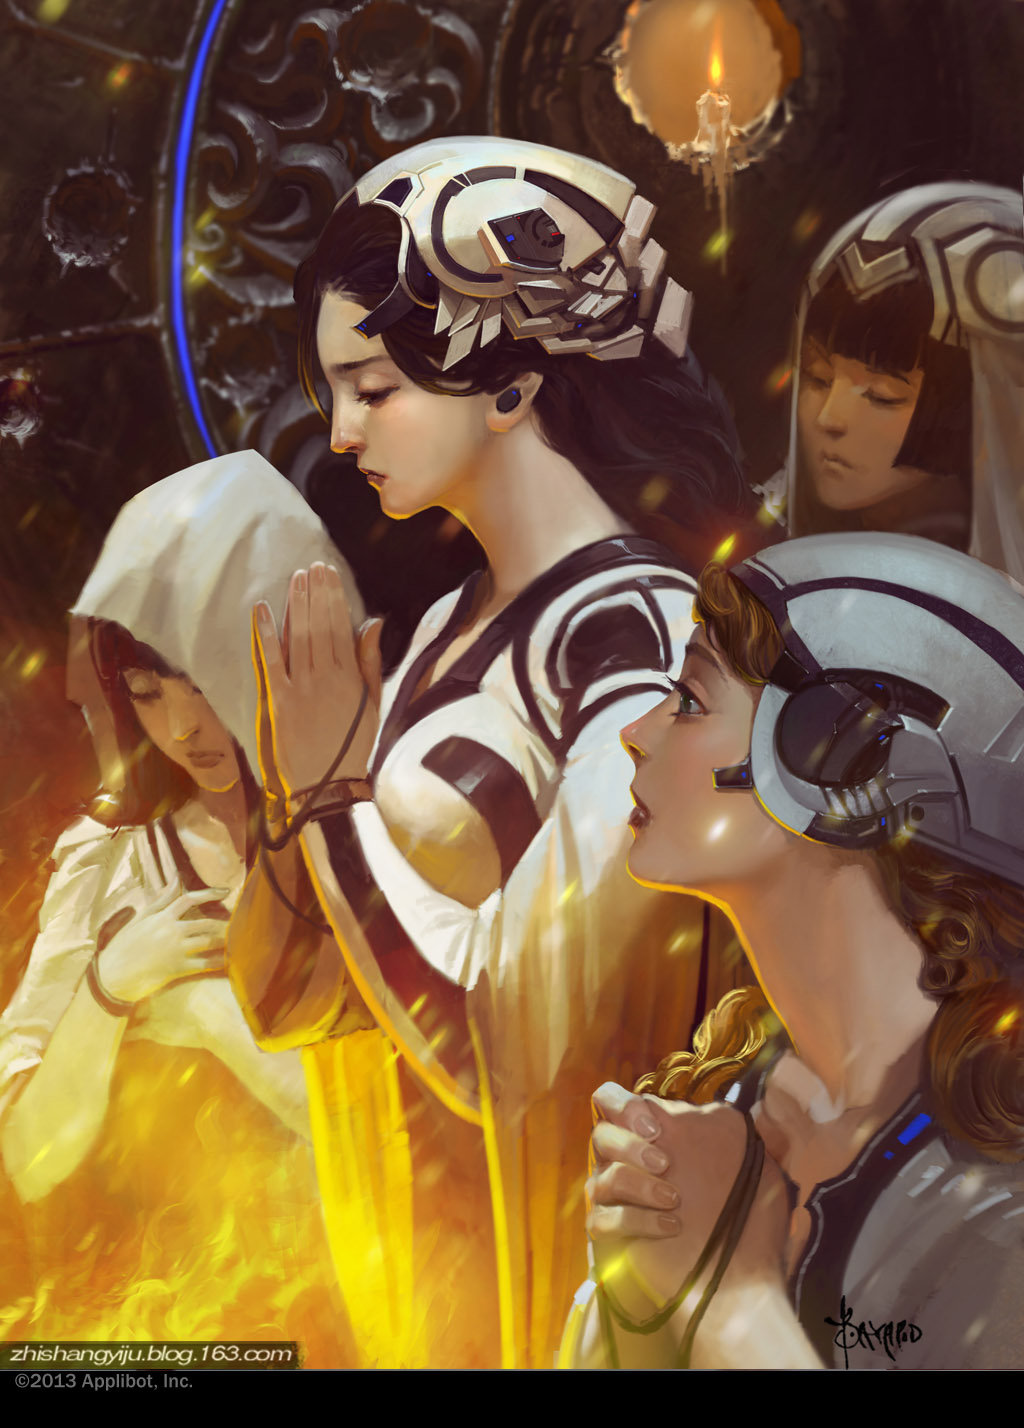 Bayard Wu Digital Painting Illustration Fantasy Prayer